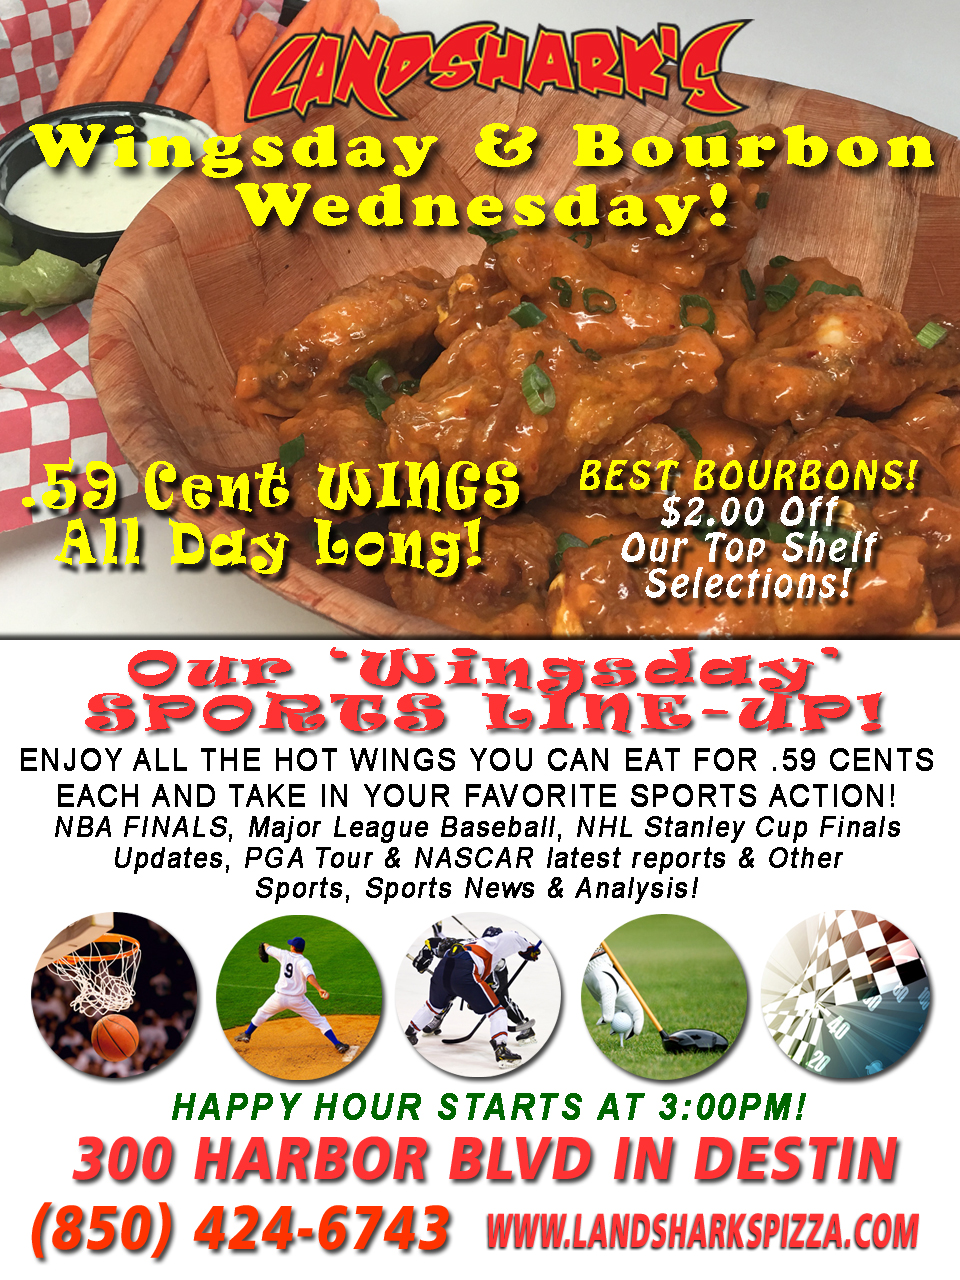 Best Hot Wings Buffalo Wings in Destin Florida at Landsharks